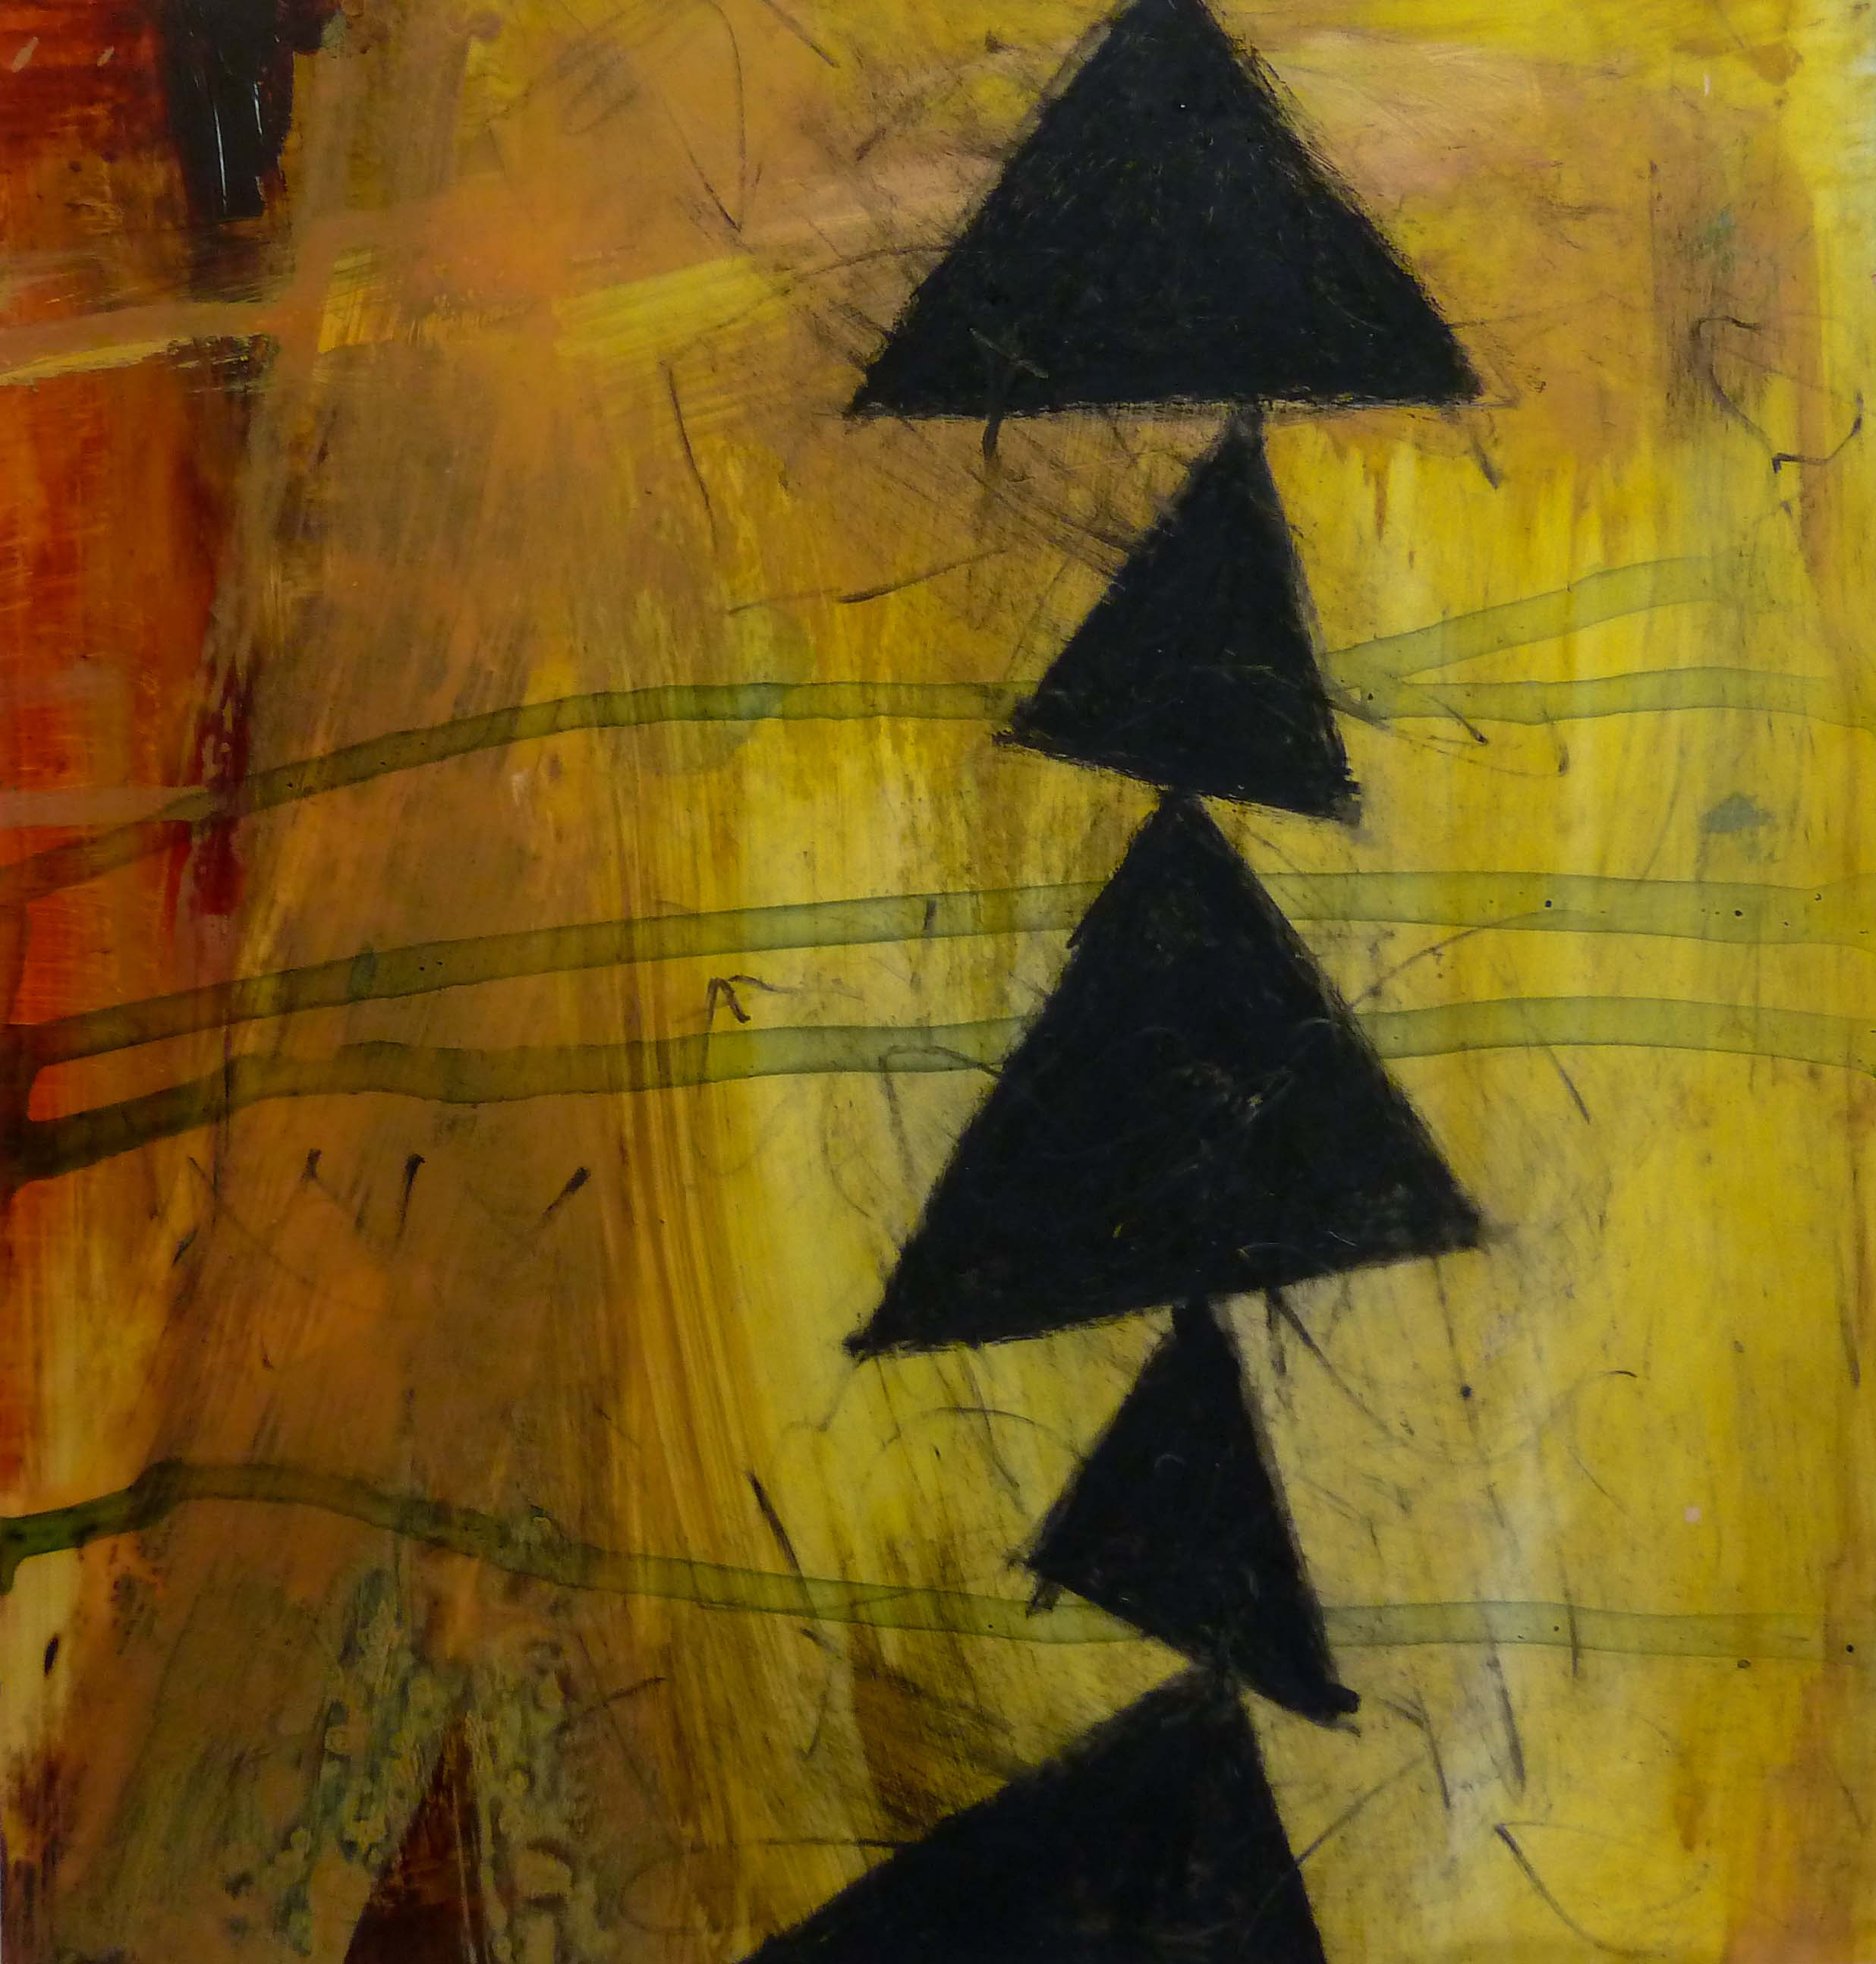 """Side Trail I, acrylic and oil crayon on film mounted to paper, 10"""" x 10"""" (image size)"""